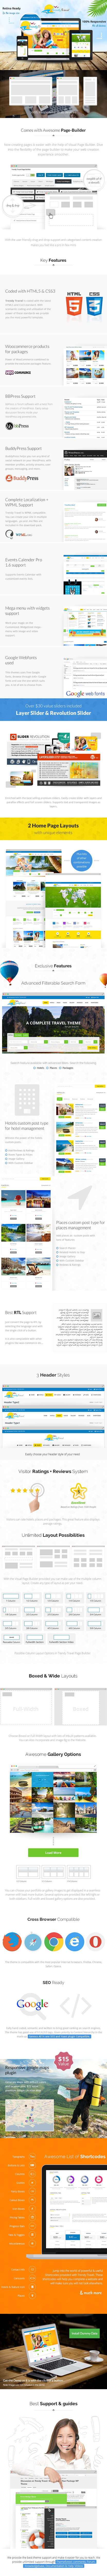 trendy2 - Trendy Travel - Tour, Travel & Travel Agency Theme